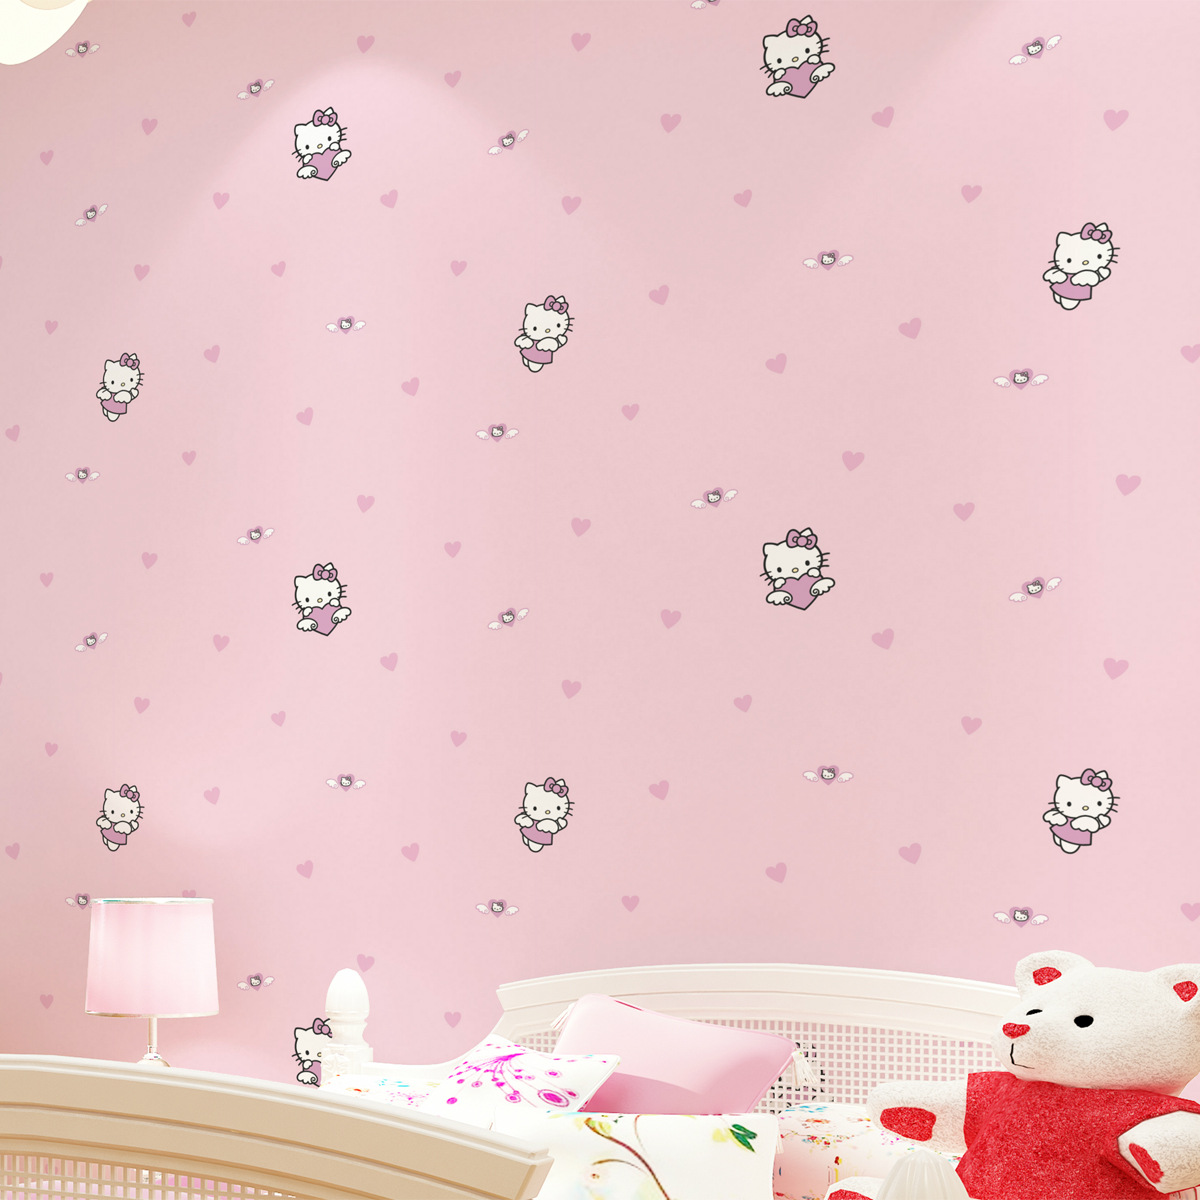 Hello Kitty Hello Kitty Wallpaper Cartoon KT Pink Princess CHILDREN'S Room GIRL'S Bedroom Non-woven Wallpaper